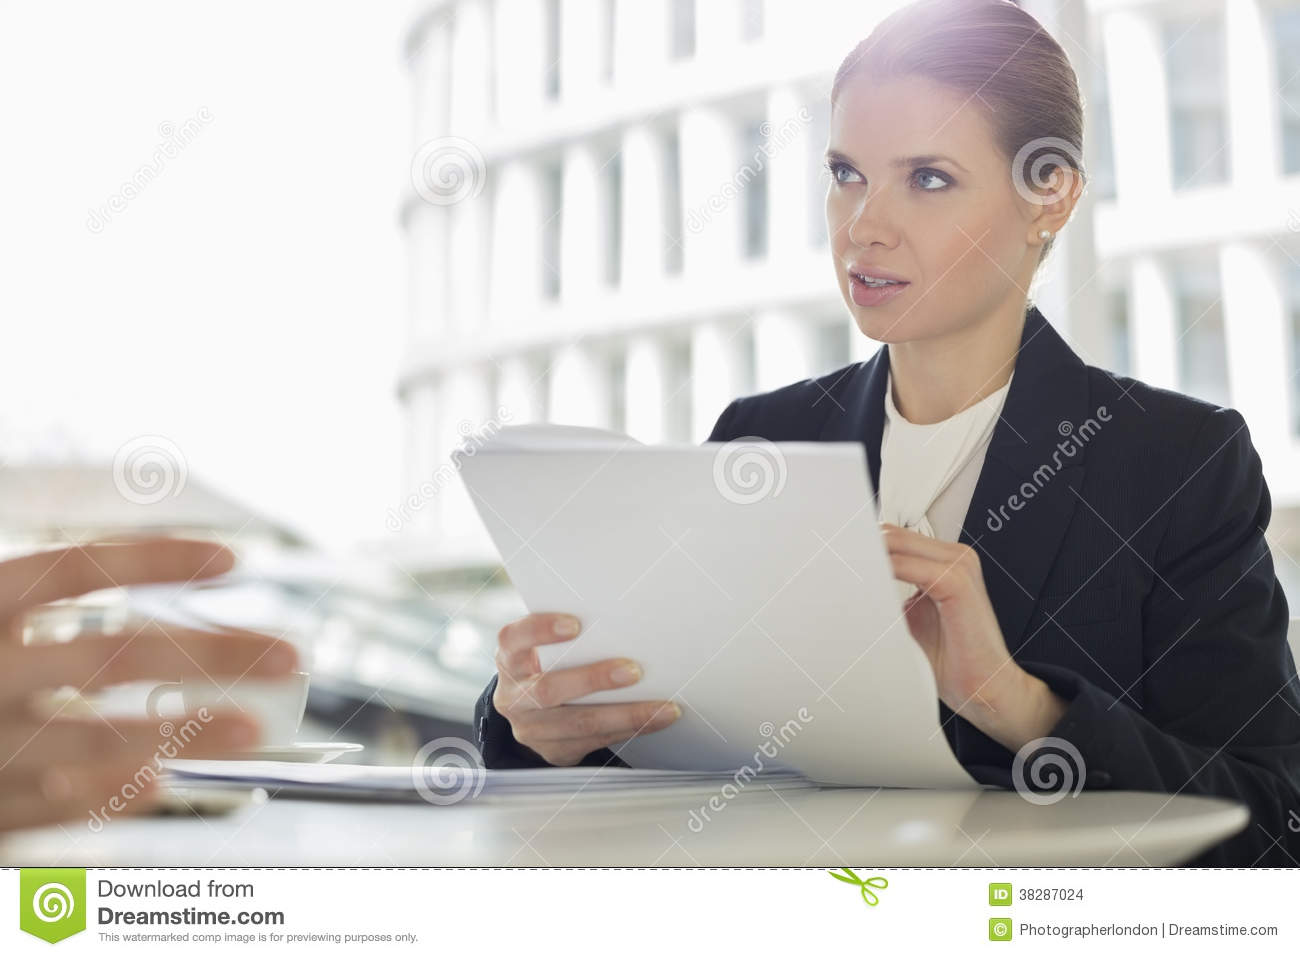 Businesswoman discussion paperwork with colleague in office cafeteria